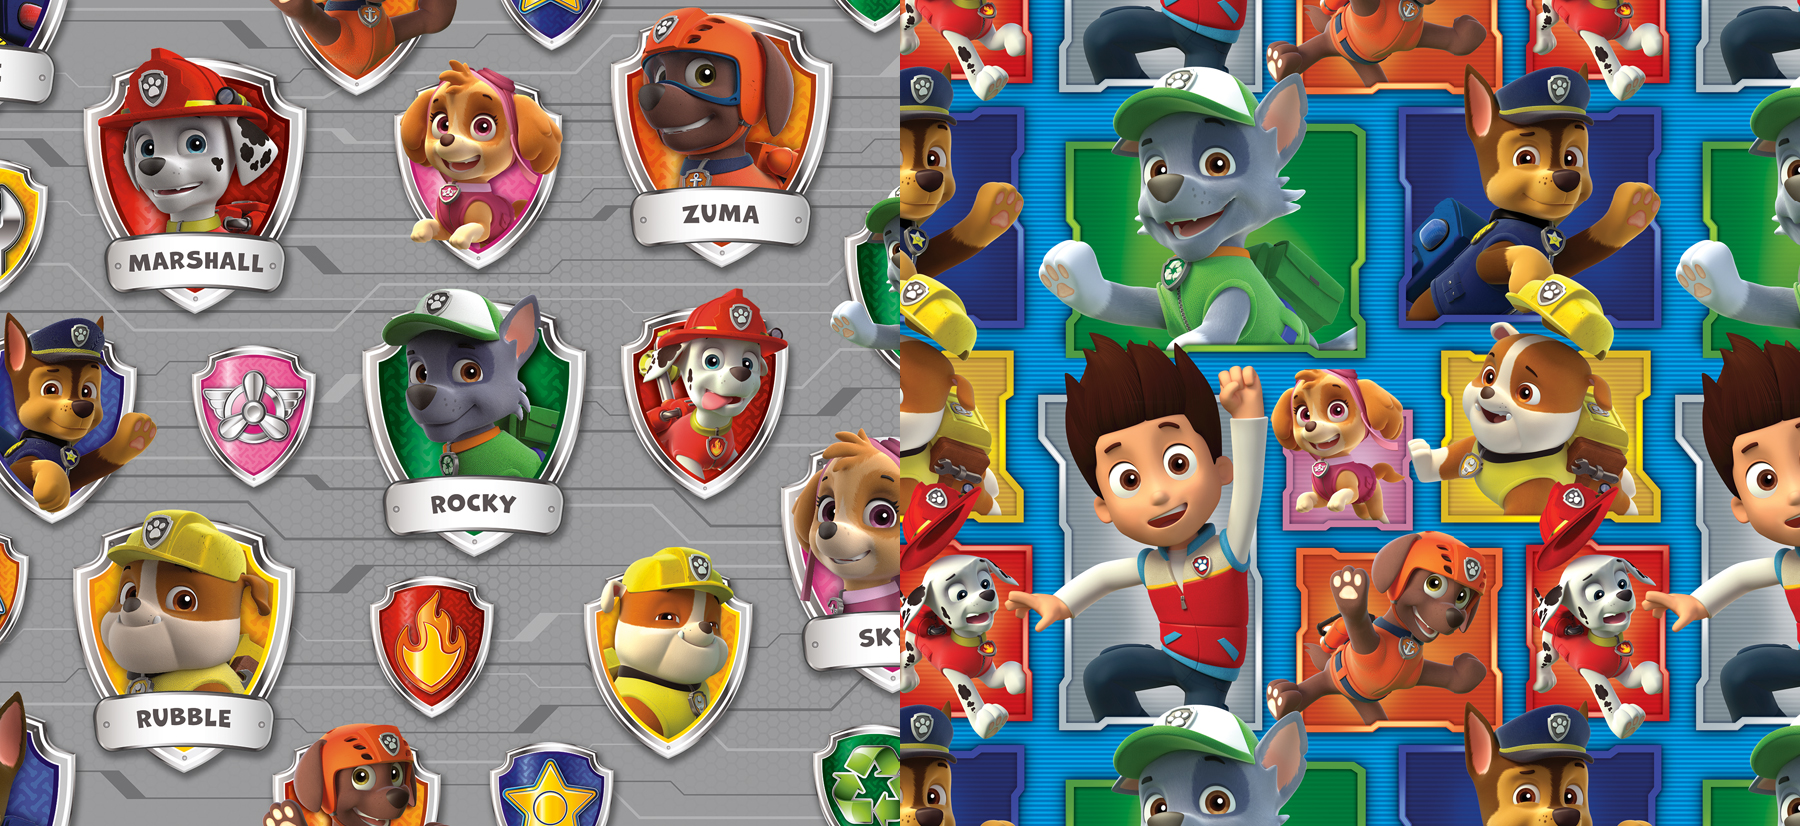 Paw Patrol Style Guide Design - Thumb 6